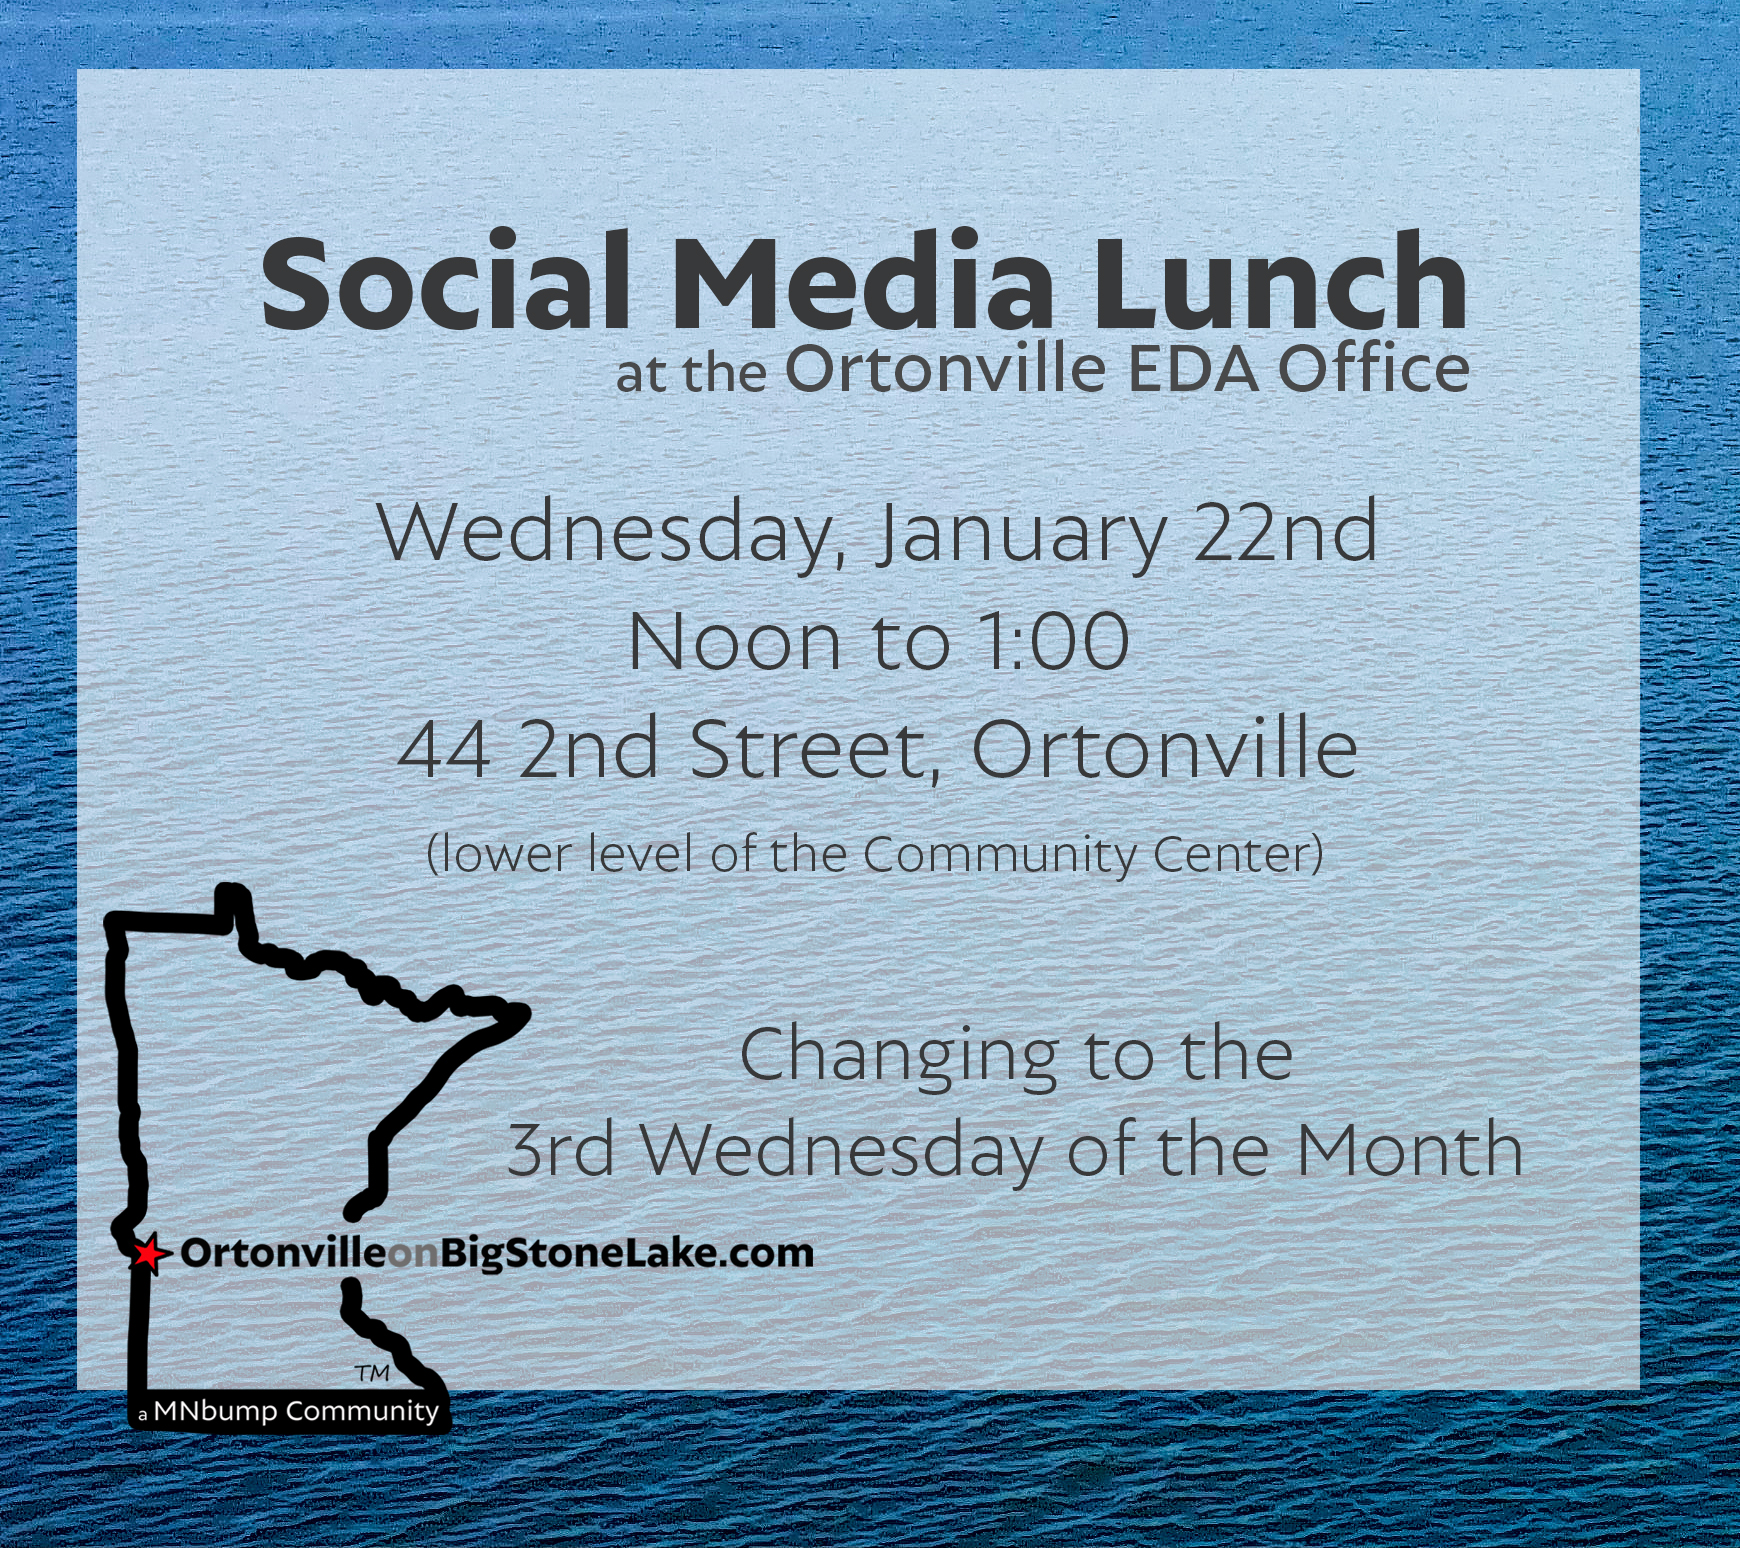 Social Media Lunch, January 22nd